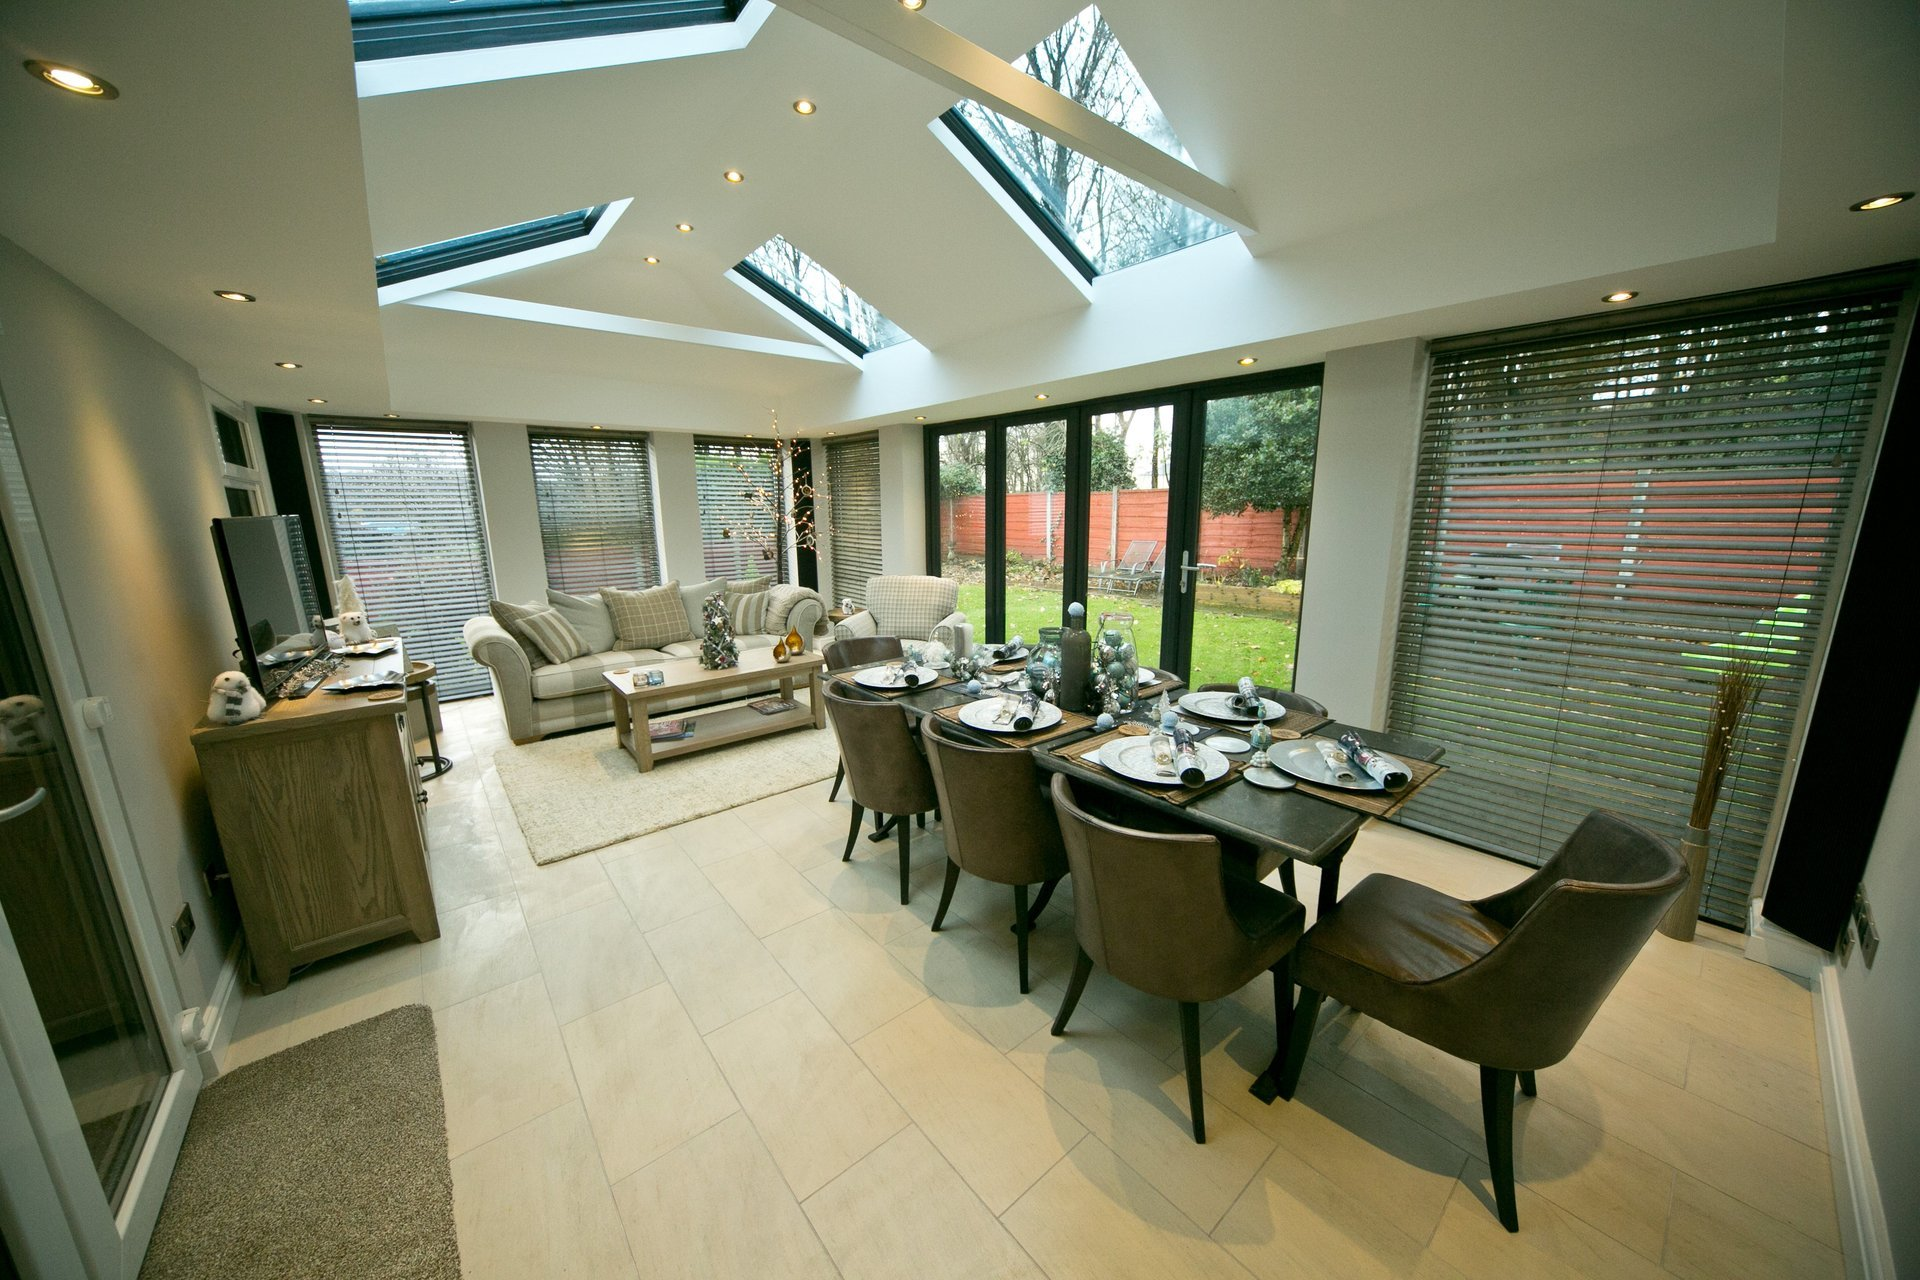 Dining room in conservatory